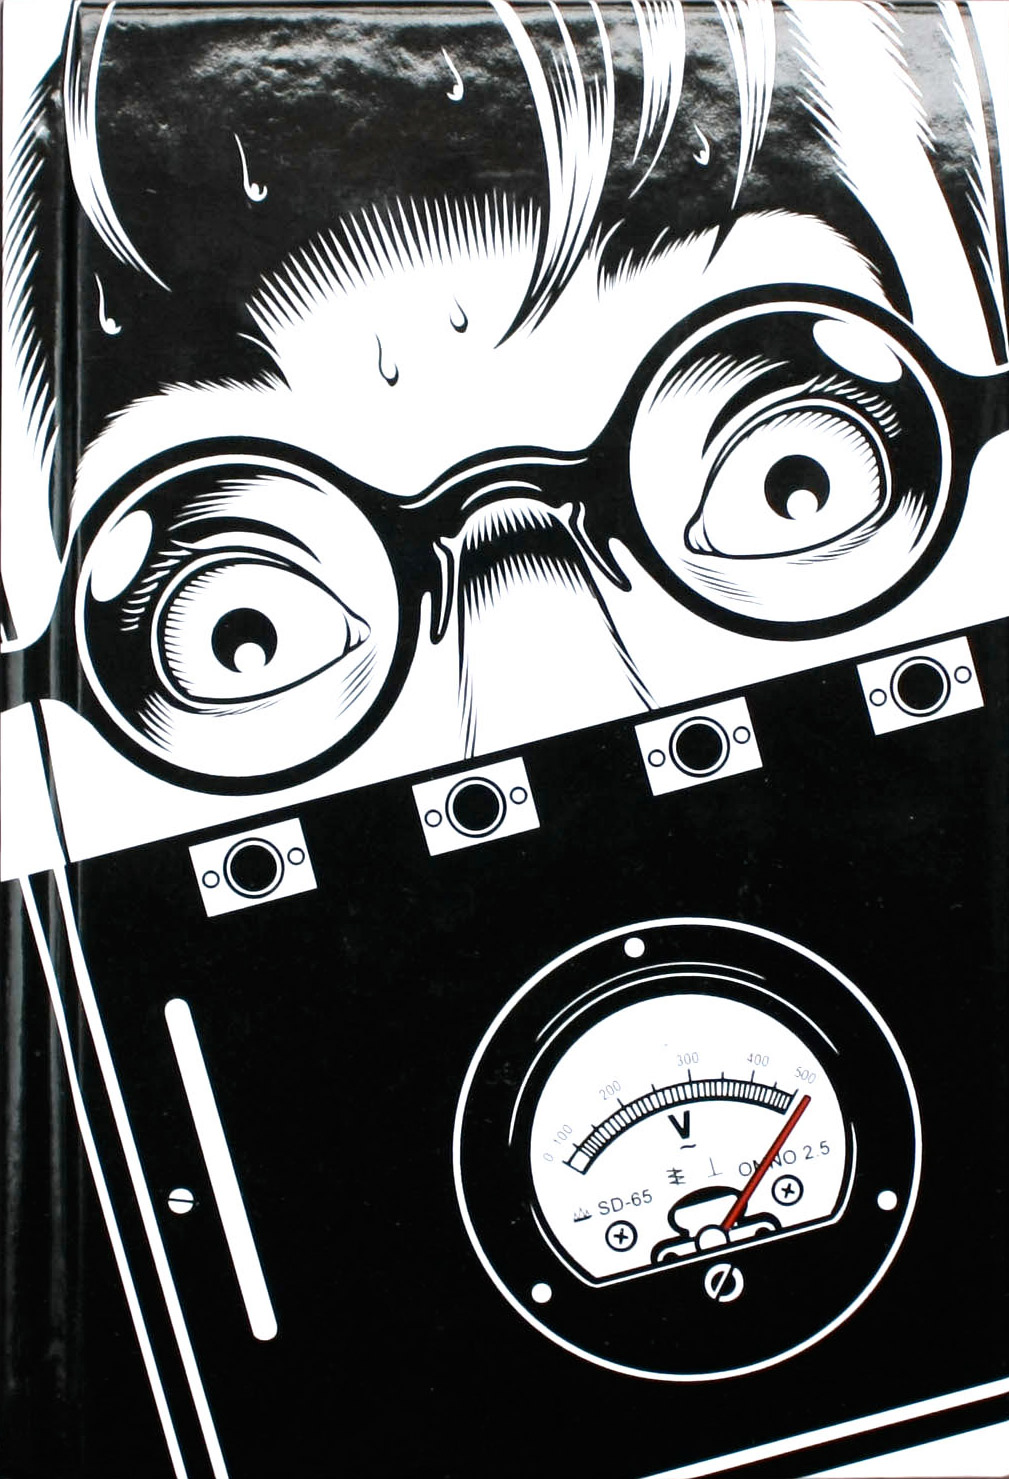 Illustration by Charles Burns on the cover of Chip Kidd's novel, The Learners.